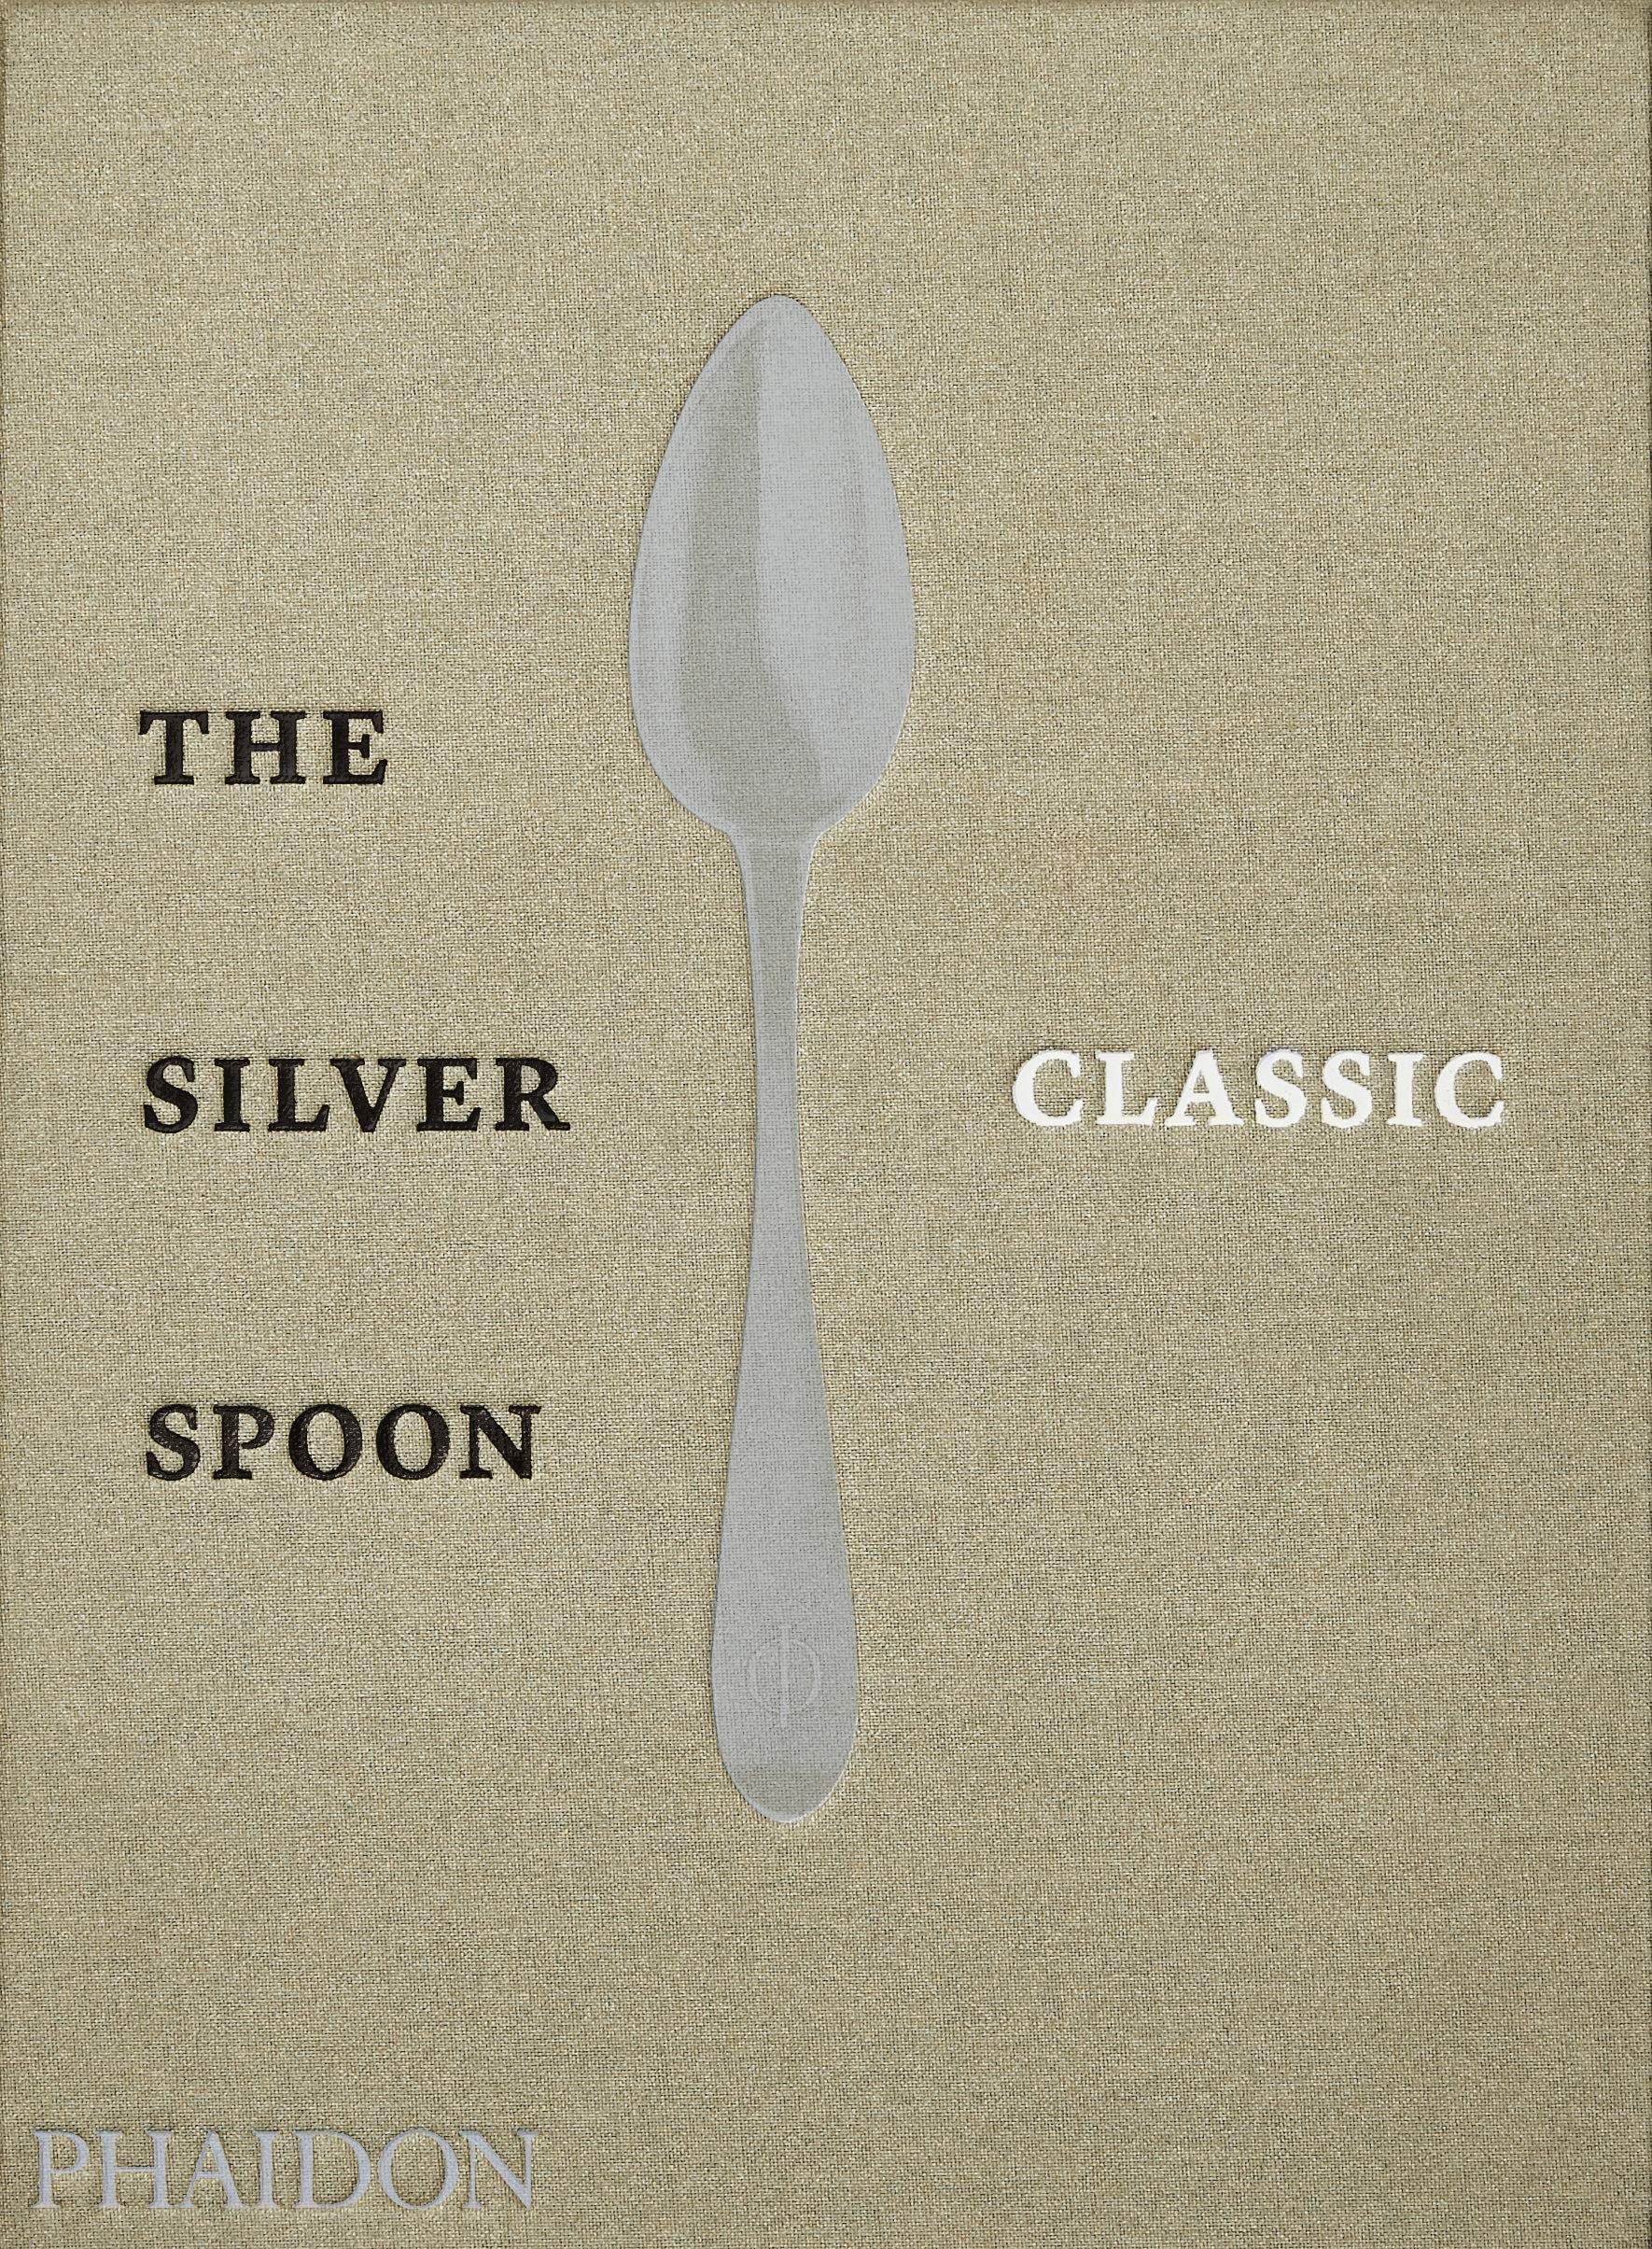 The Silver Spoon Classic by Phaidon Press